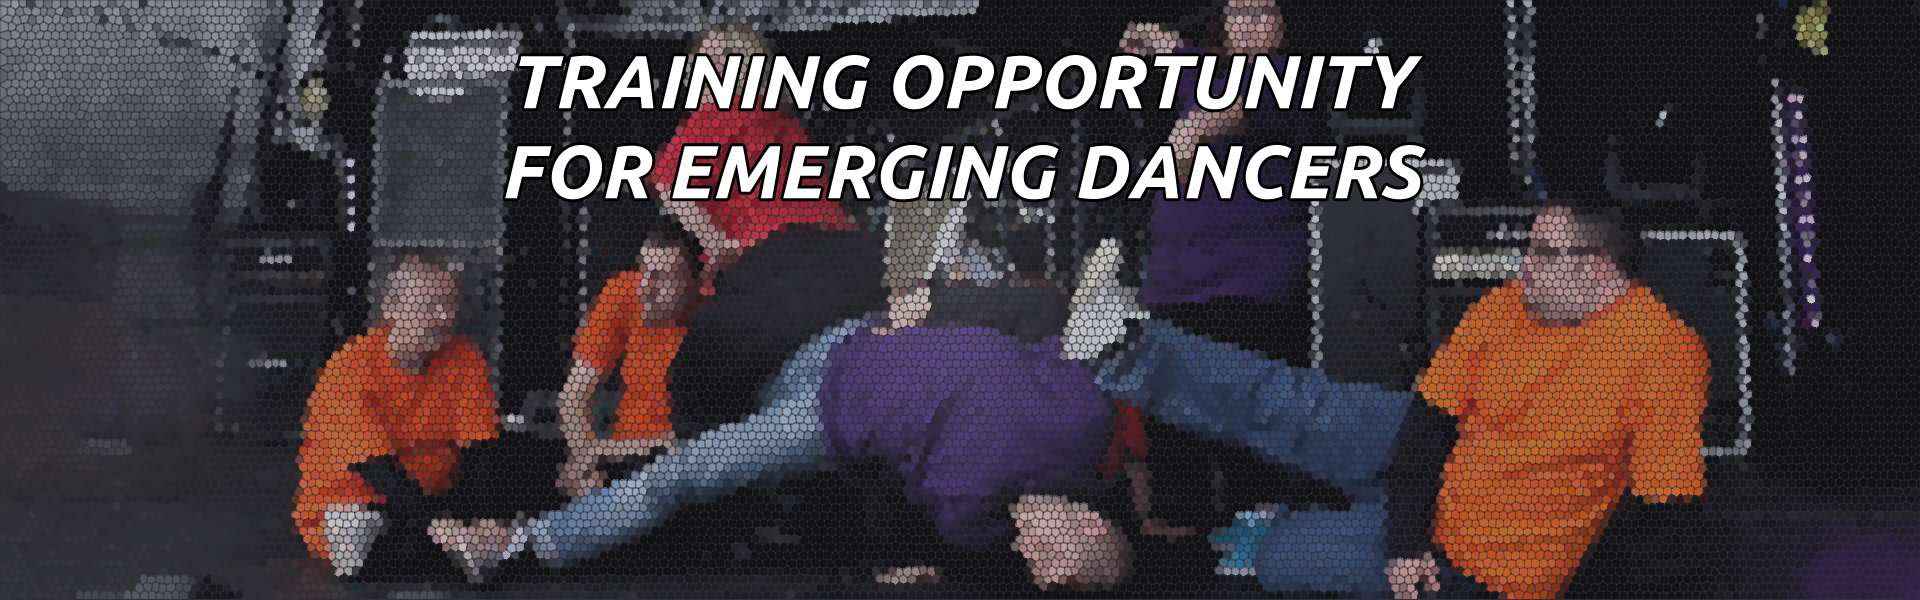 Training opportunity for emerging dancers